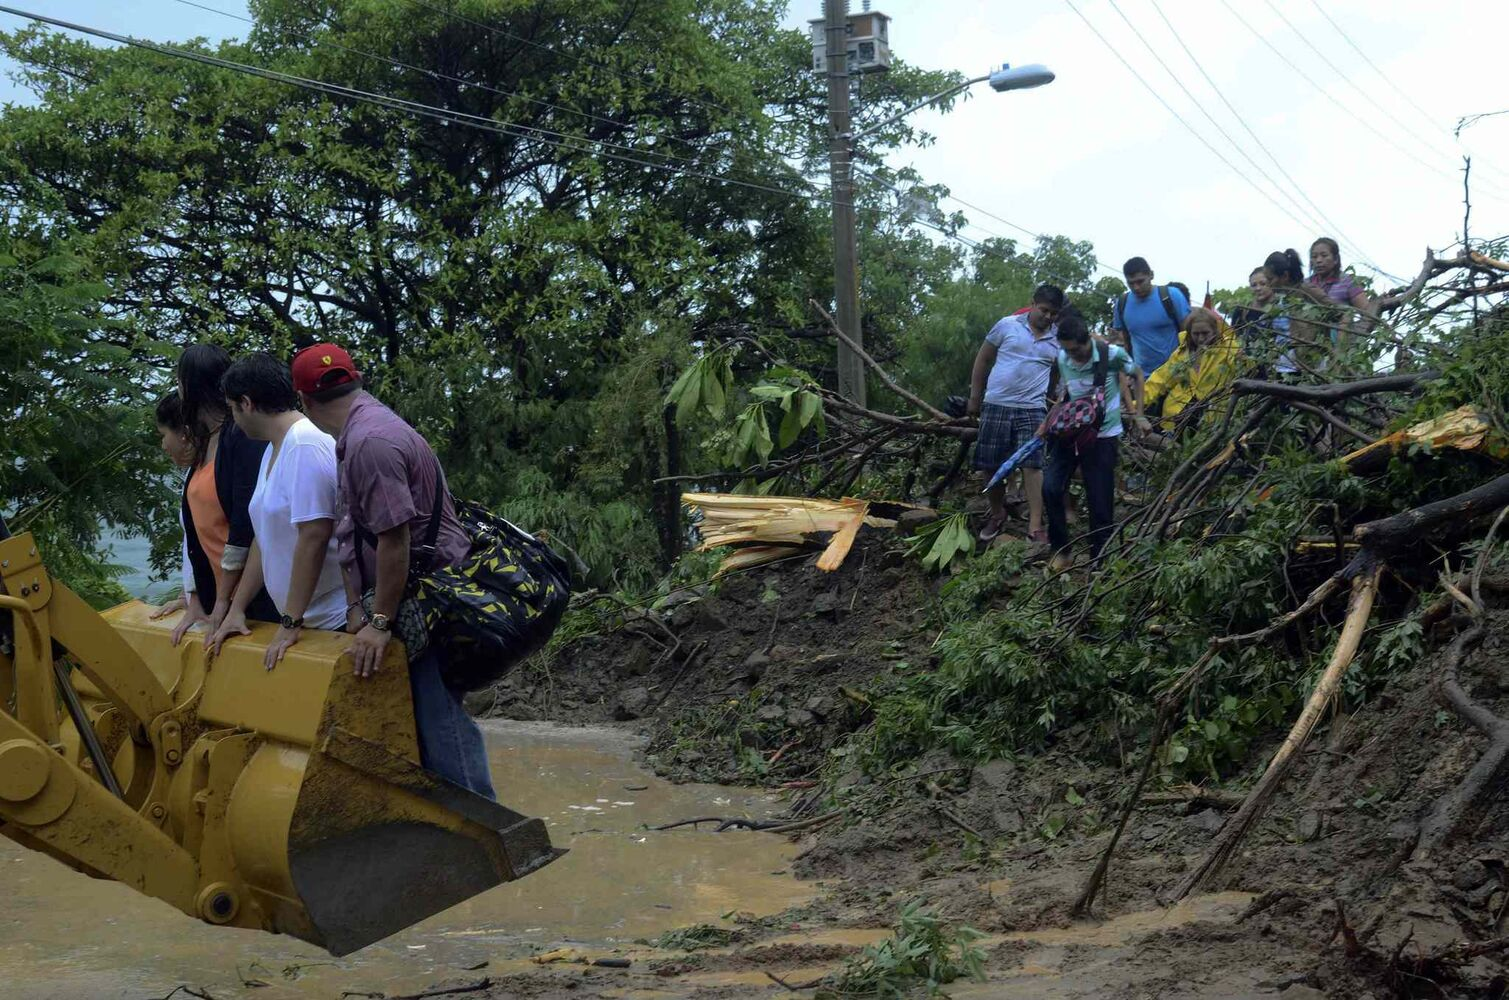 People are aided with the help of a bulldozer to cross a road after a landslide caused by heavy rains brought by Tropical Storm Manuel on the outskirts of Acapulco, Mexico, Monday Sept. 16, 2013.  (Bernandino Hernandez / The Associated Press)